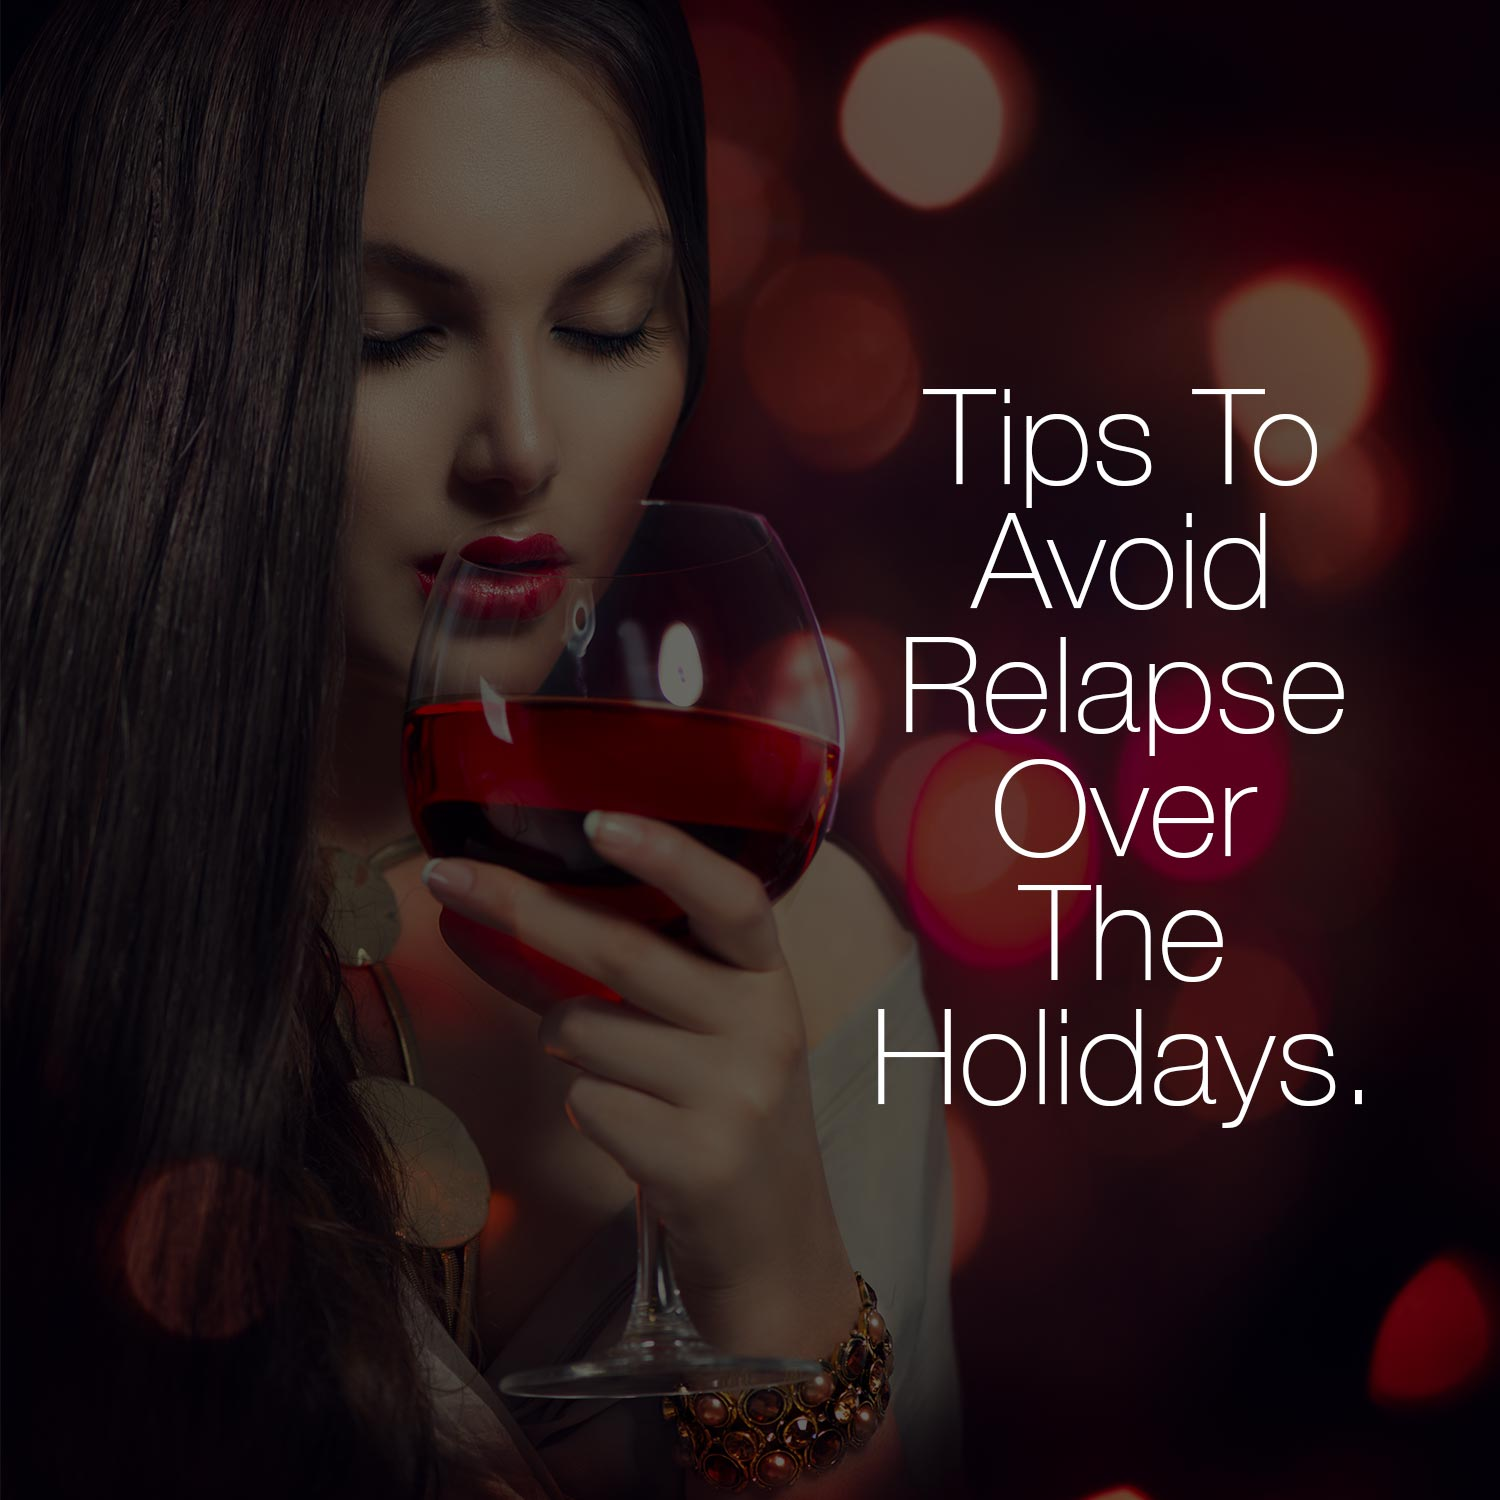 Tips to avoid drug or alcohol relapse during the holidays